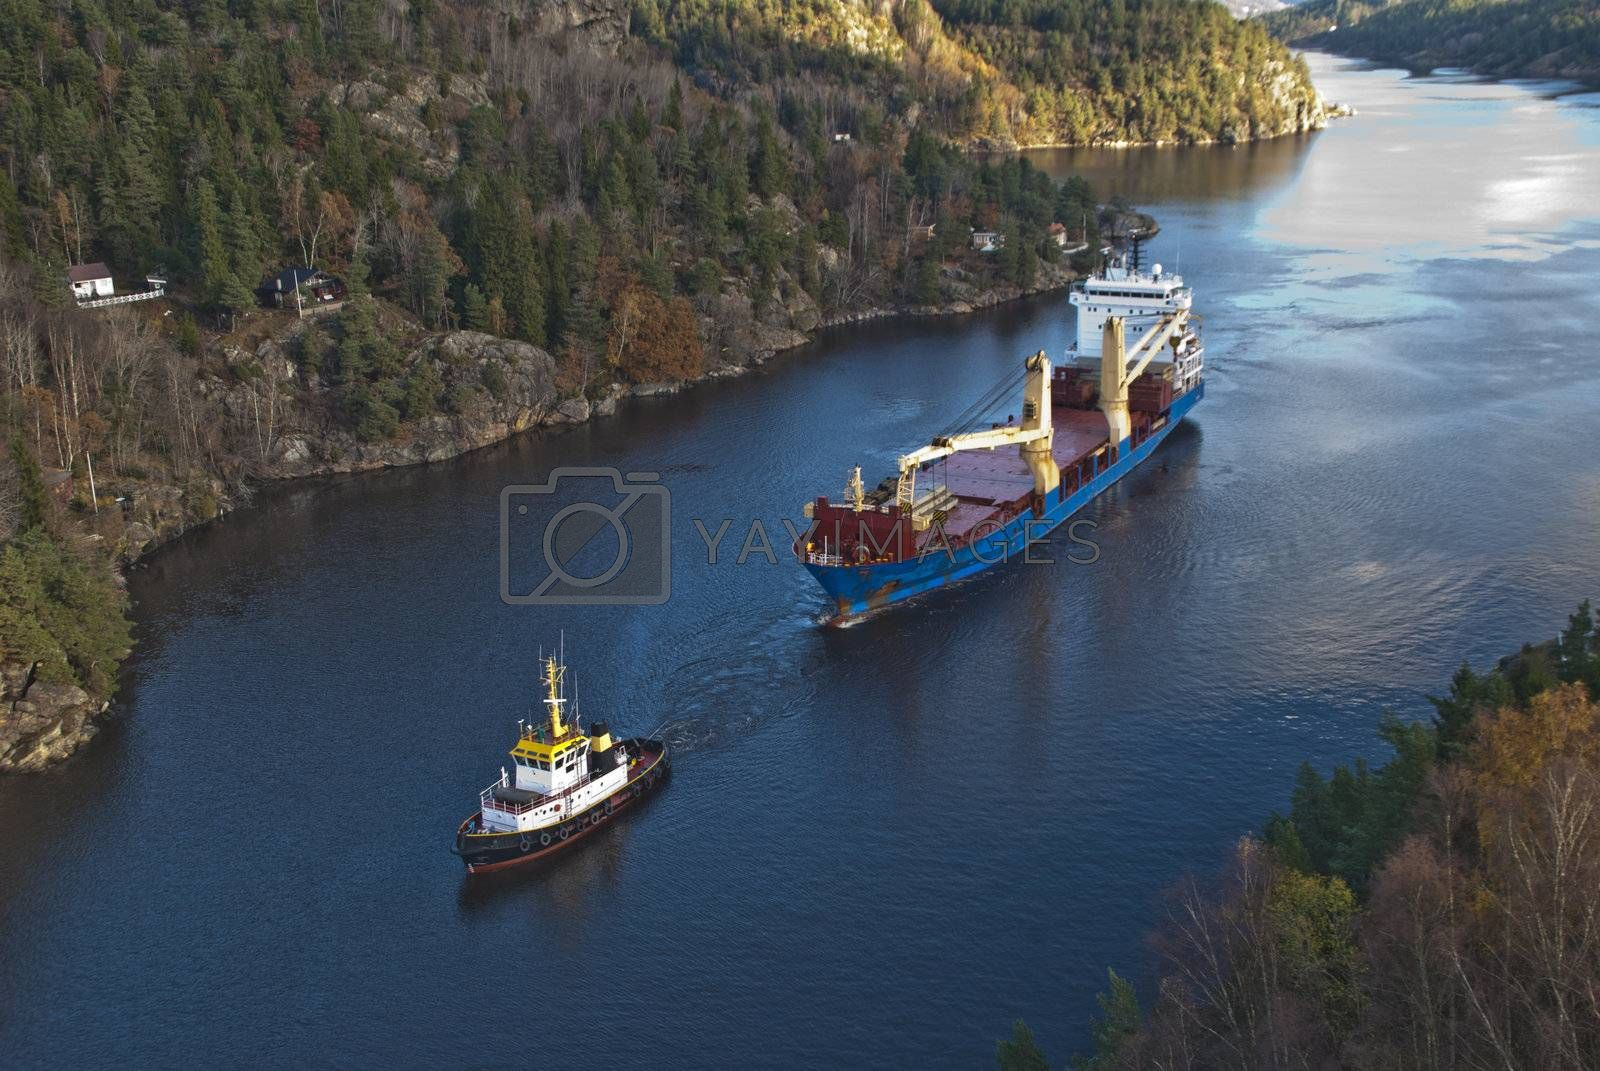 when it comes so large ships as bbc europe in ringdalsfjord they must have towing assistance to get out to the open sea and then comes little tug herbert of benefit